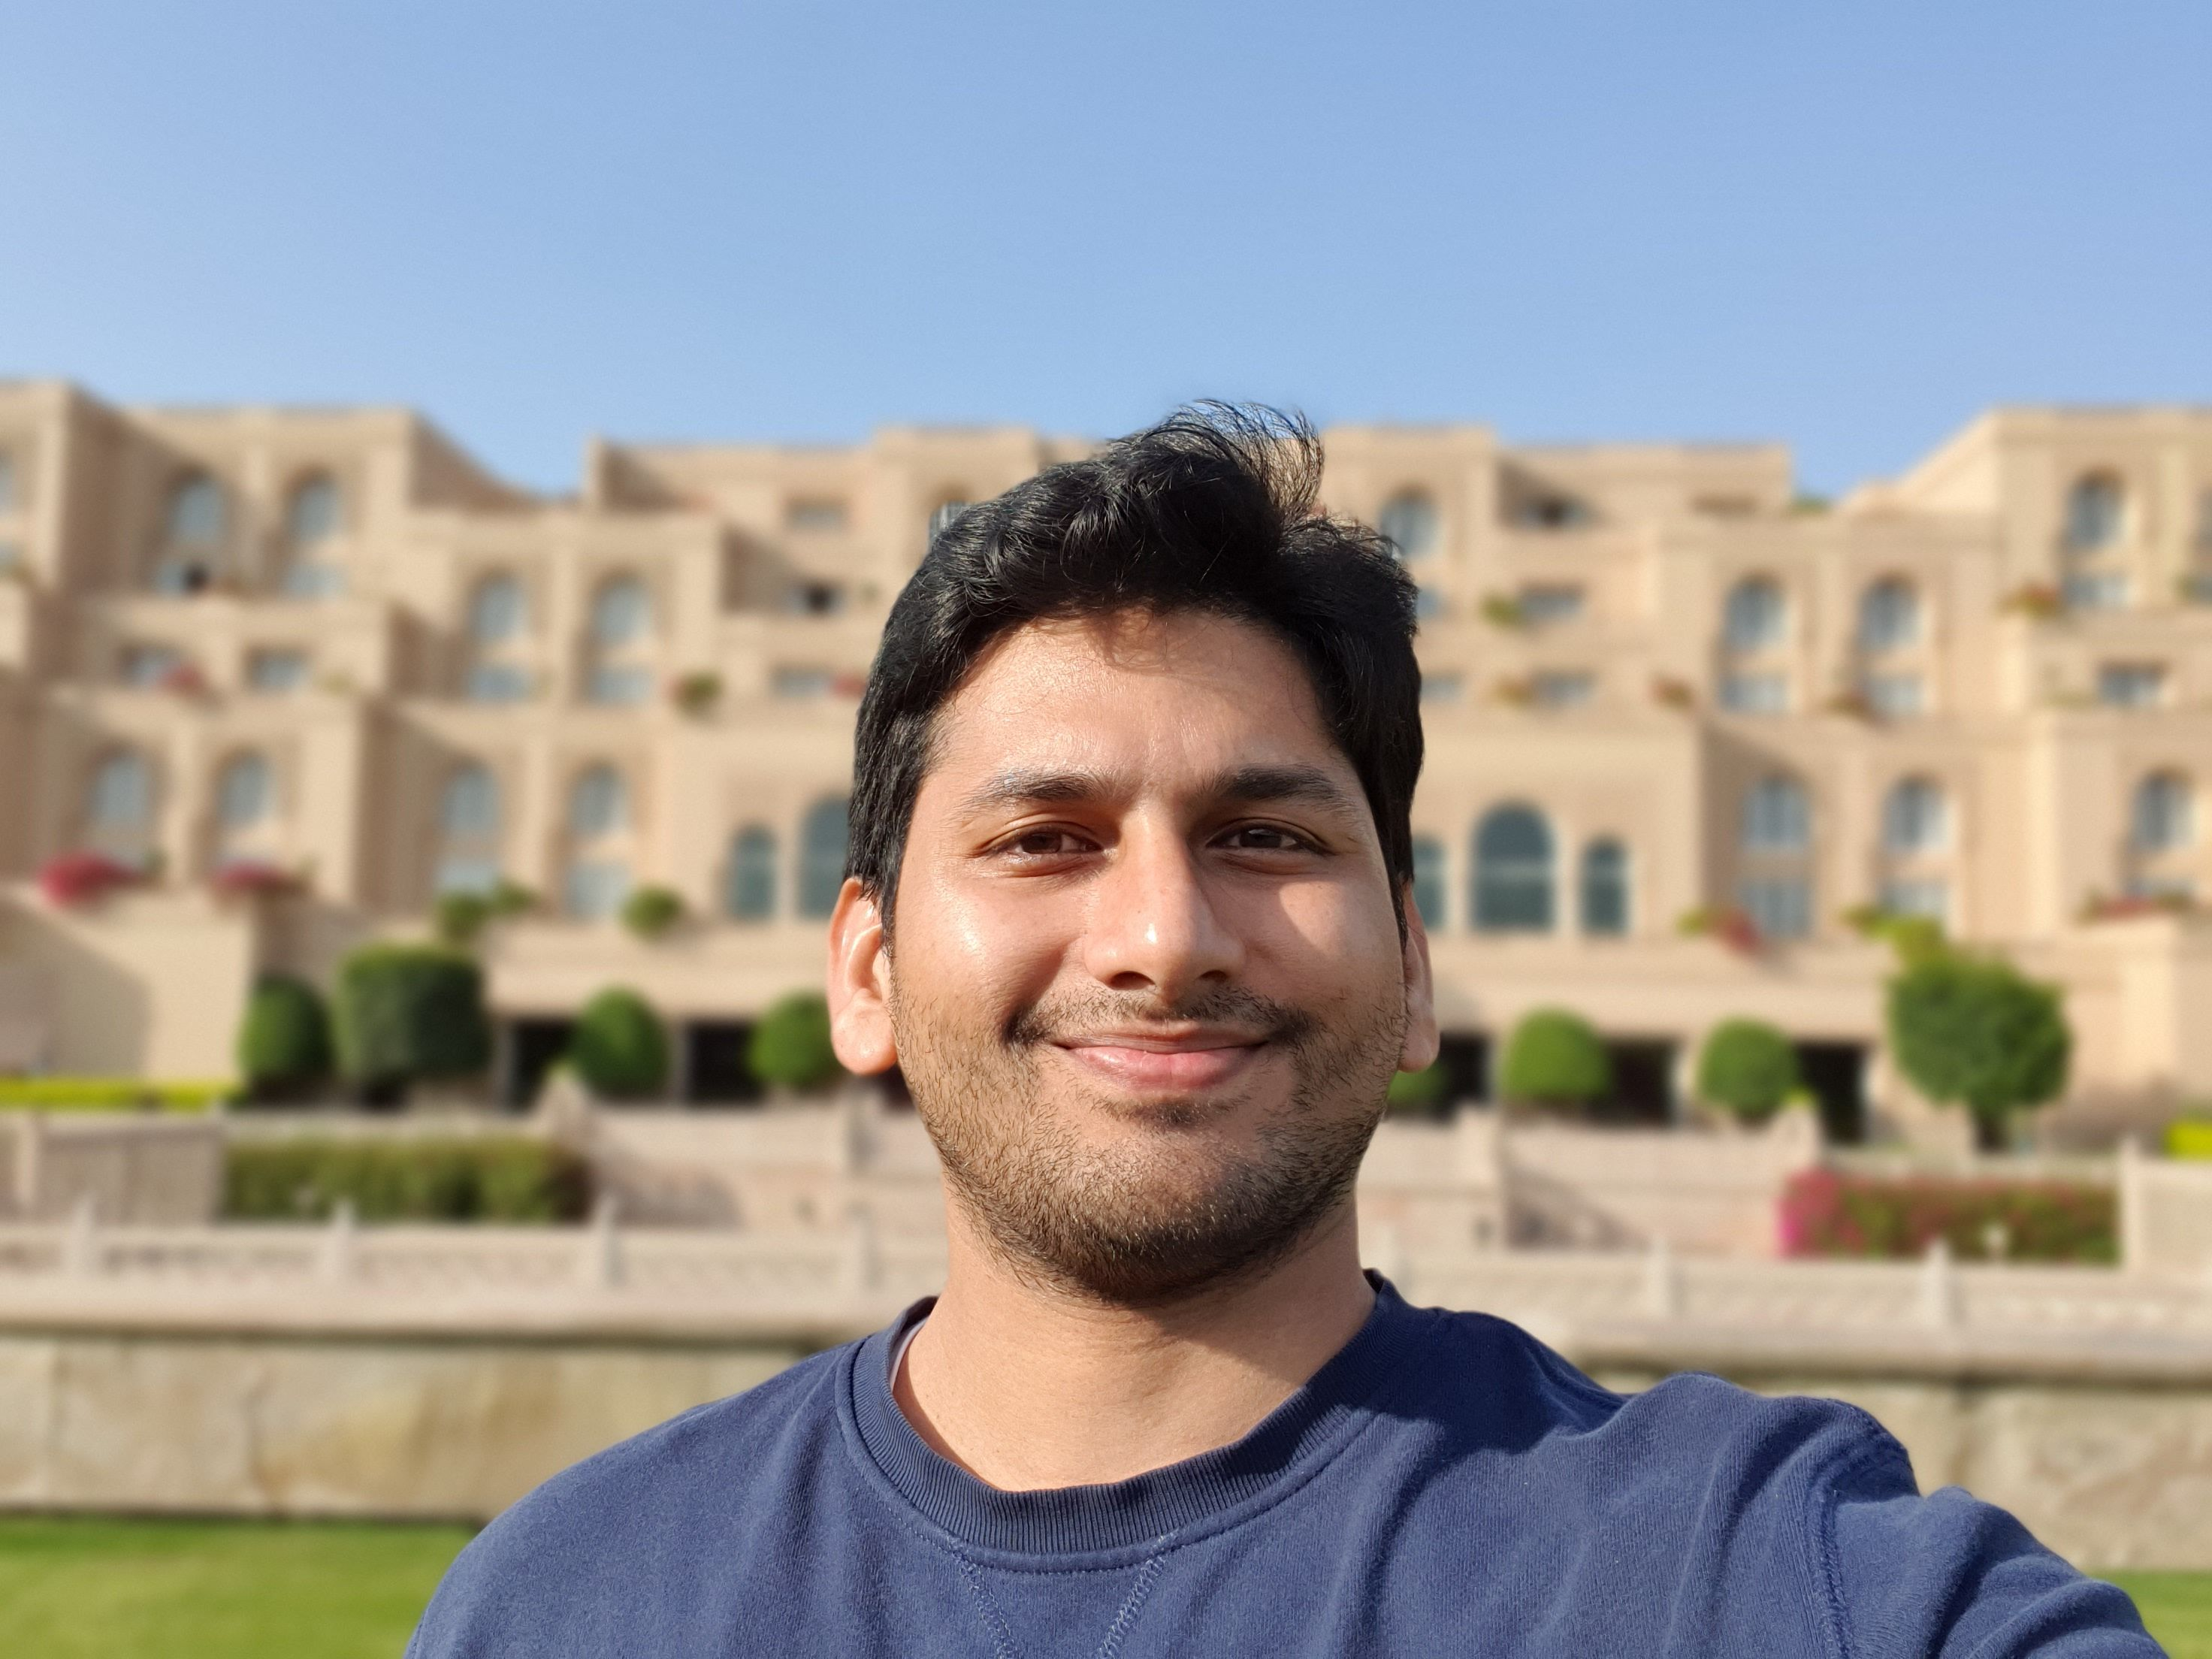 Samsung Galaxy S10+ Camera Sample Selfie Daylight Live Focus